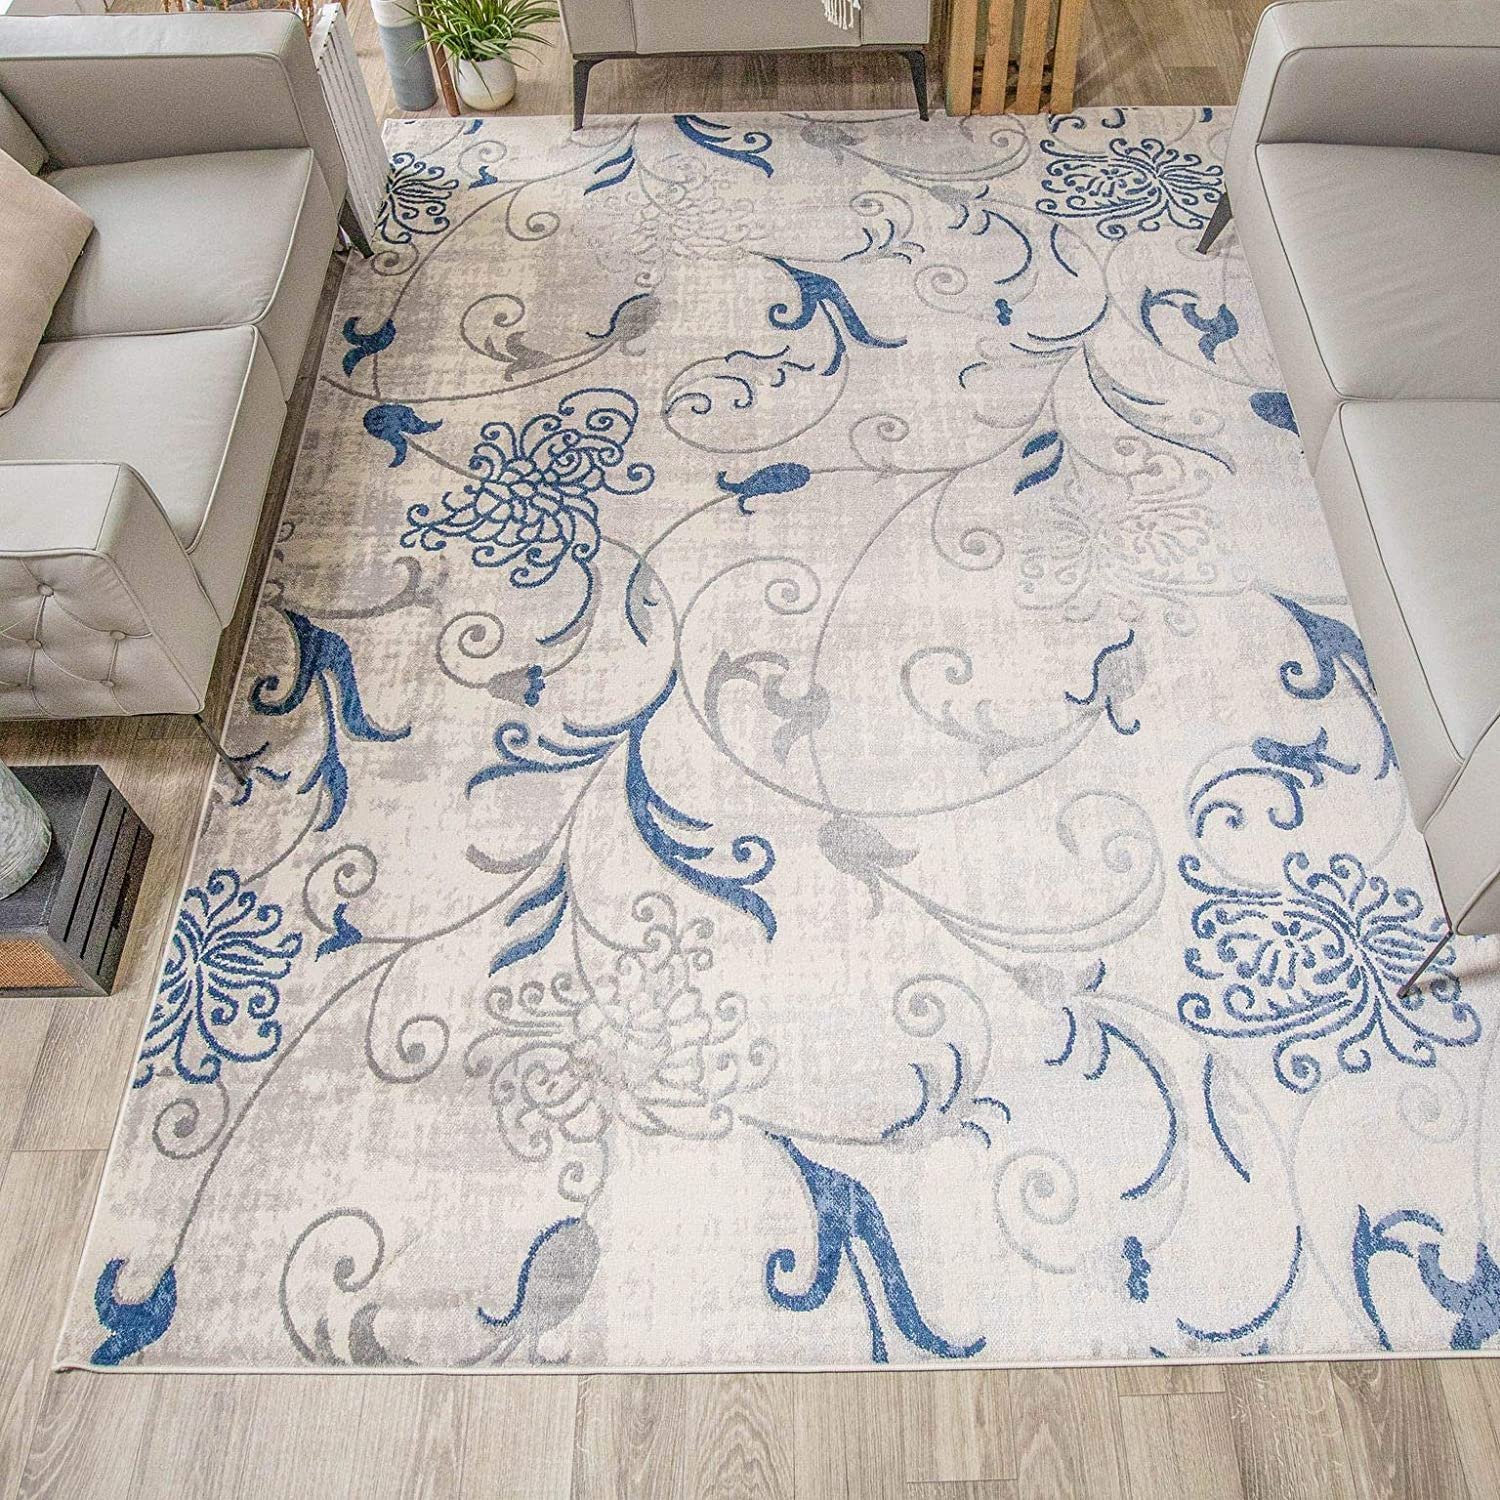 SUPERIOR Zora Scrolling Max 69% OFF Indoor Area -Cobalt Blue Rug SEAL limited product 5X8